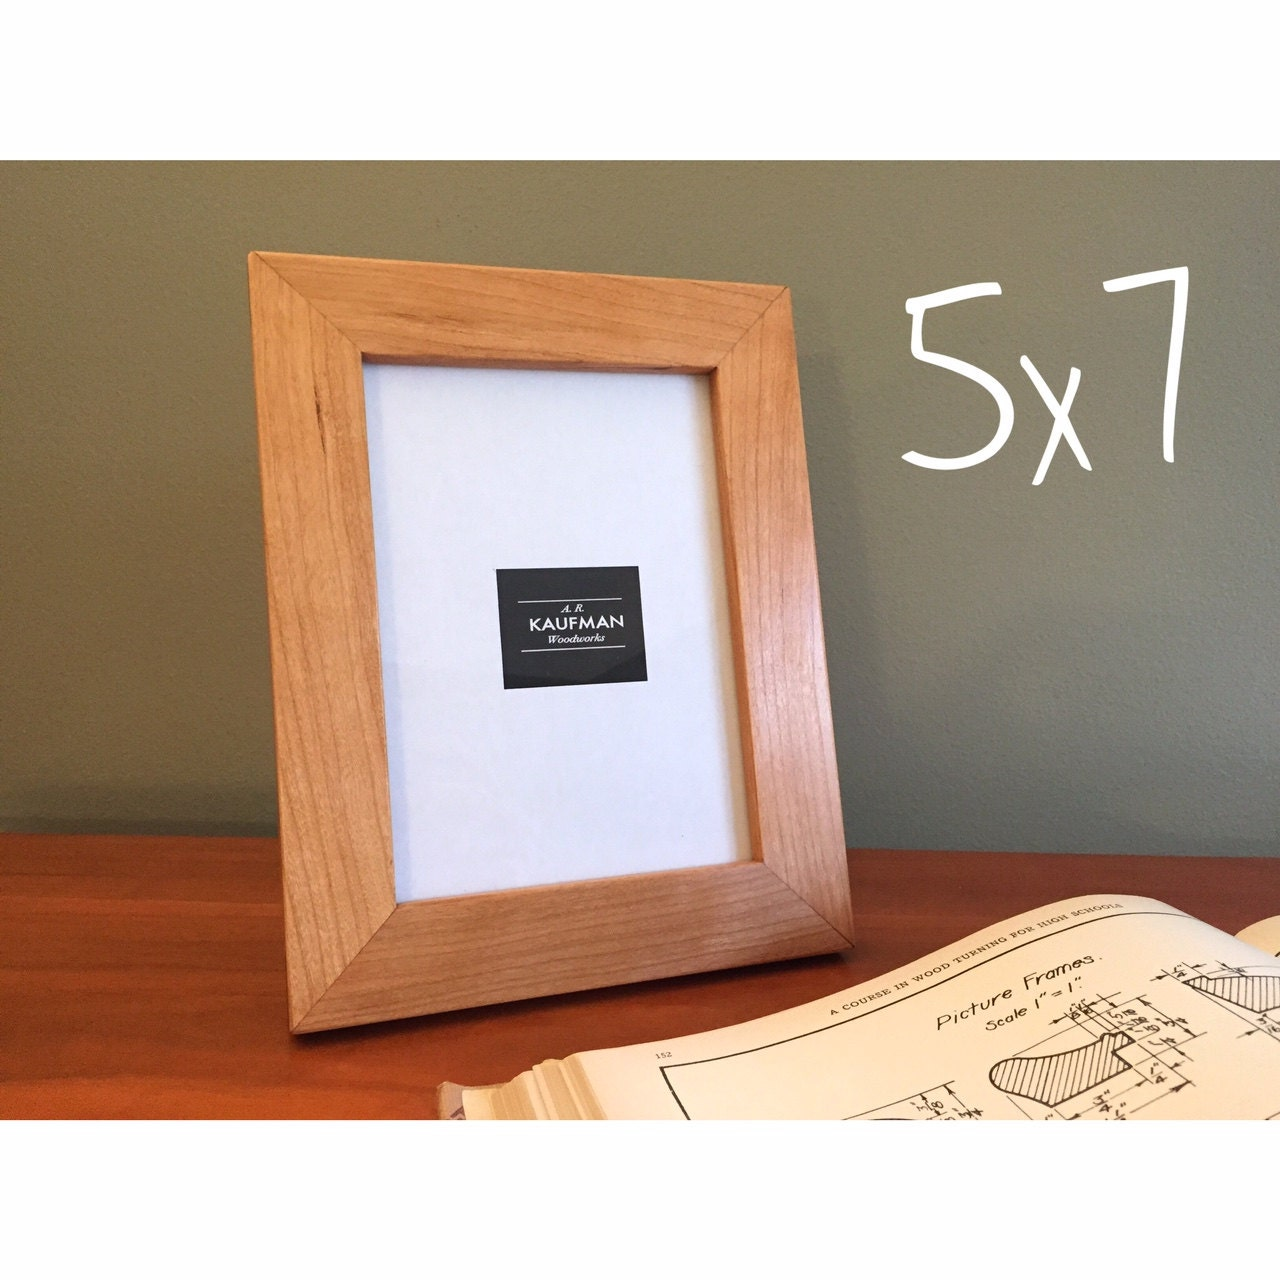 5x7 wooden picture frame cherry wood with walnut splines. Black Bedroom Furniture Sets. Home Design Ideas